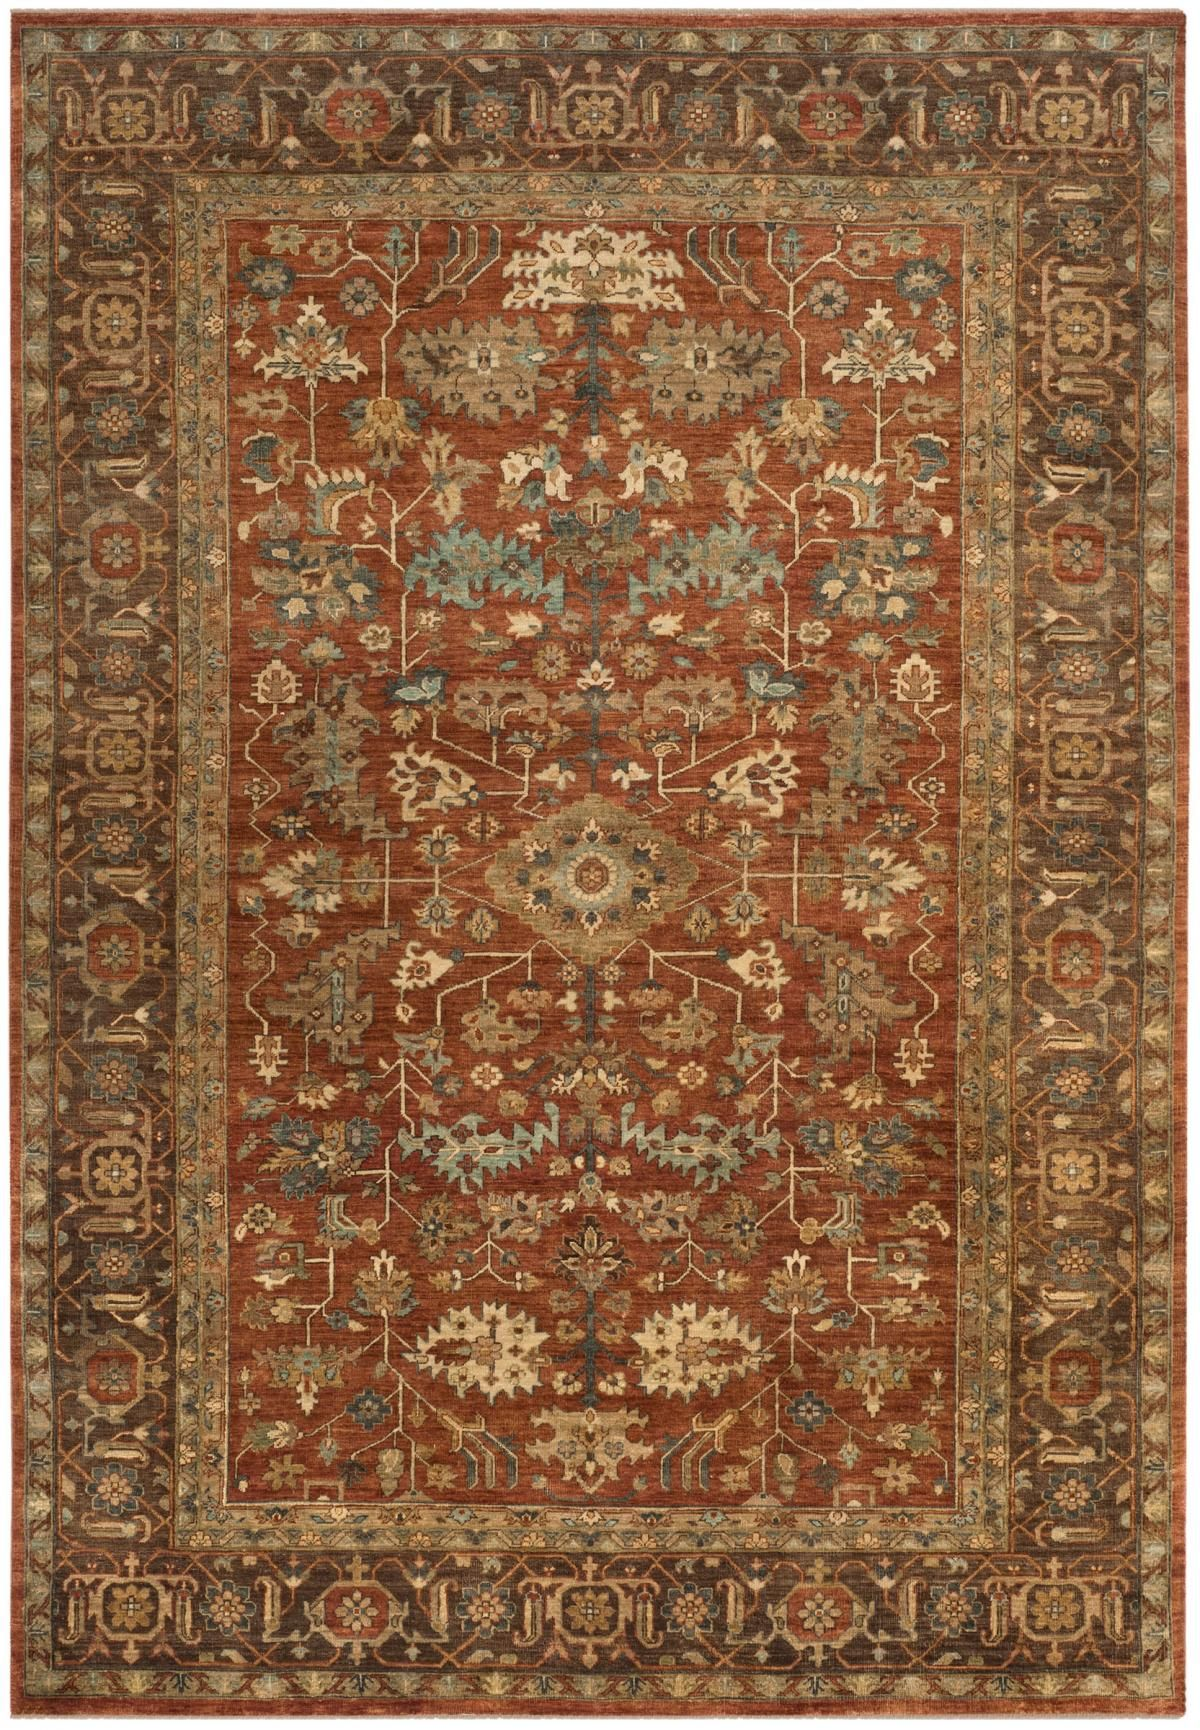 Rug Rlr9554a Harrowby New Ralph Lauren Area Rugs By Safavieh